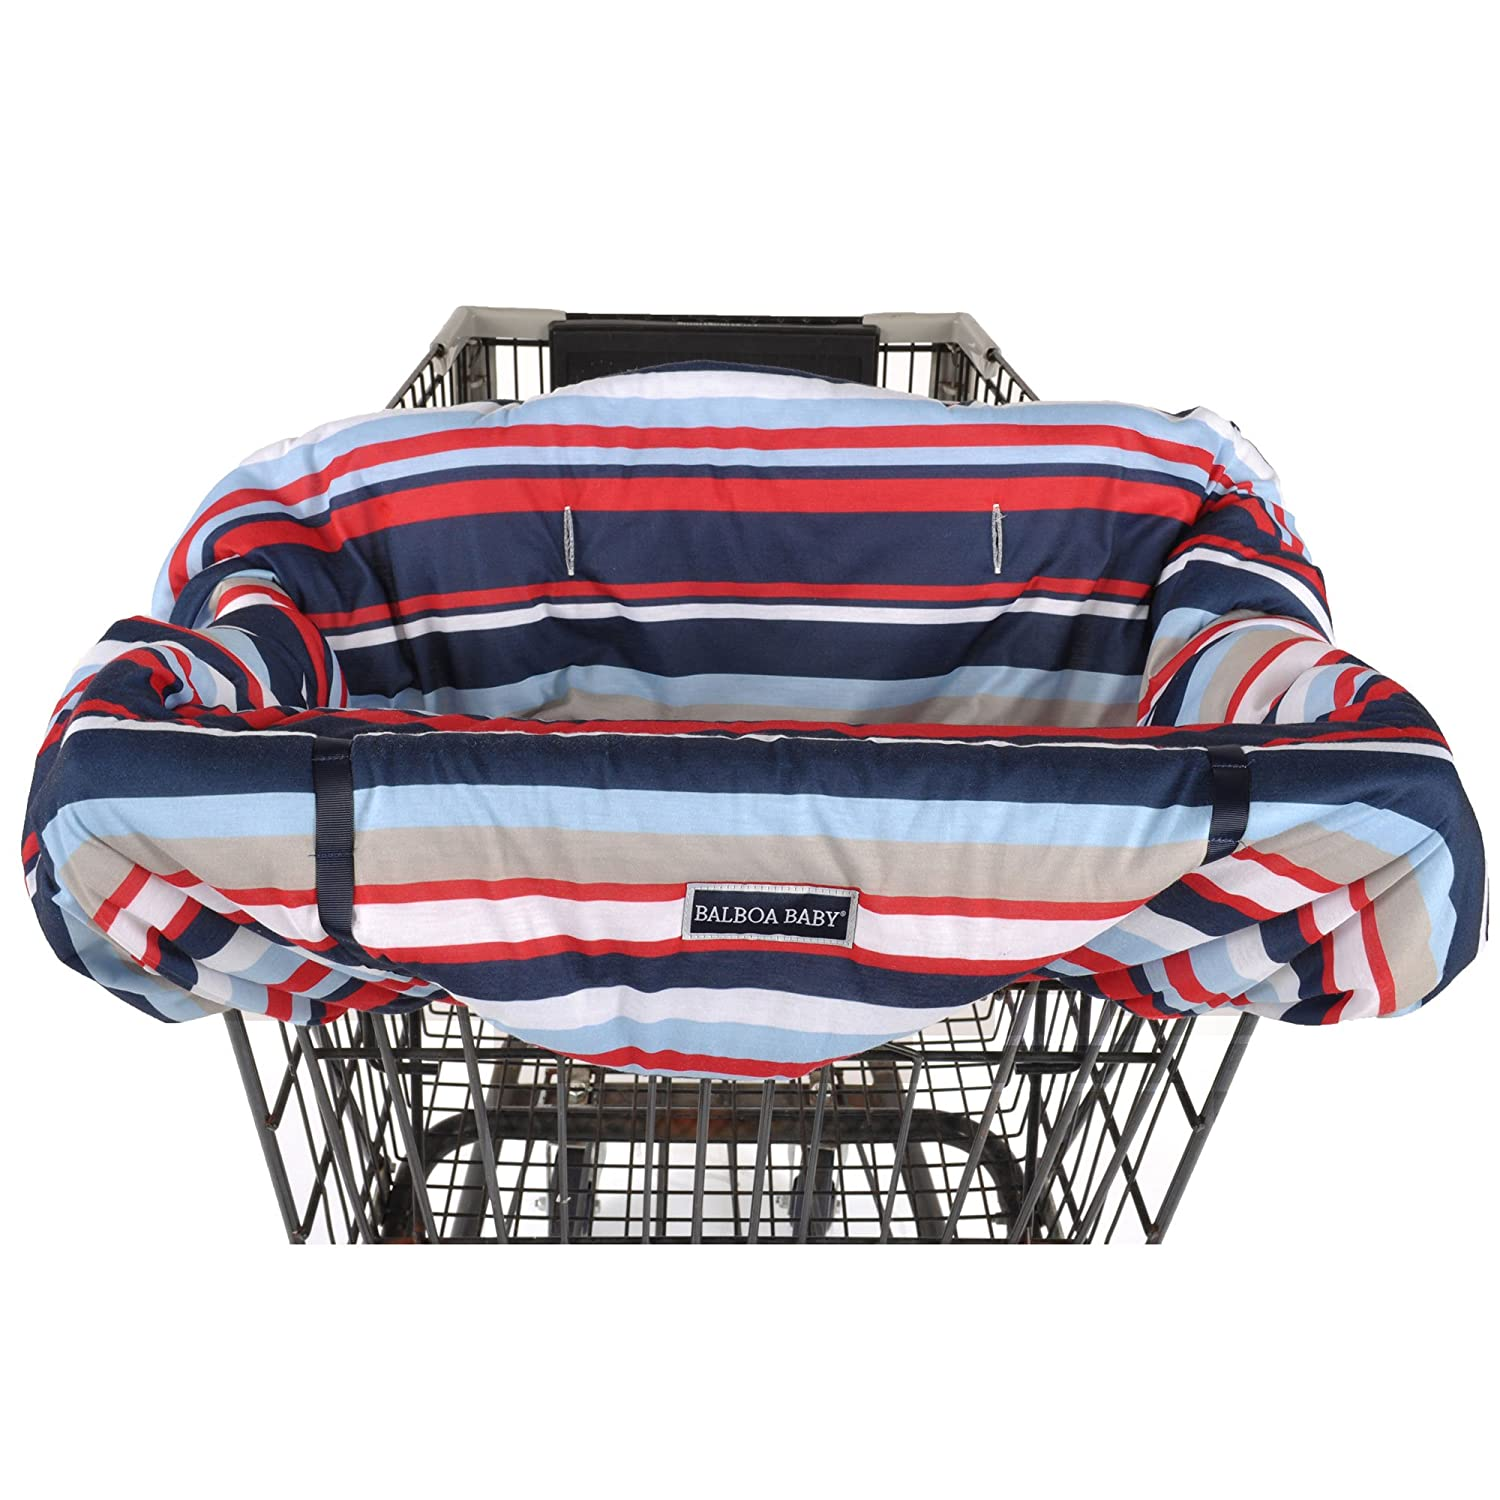 Balboa Baby Jersey Shopping Cart Cover - Navy & White Jumbo Dot 93003